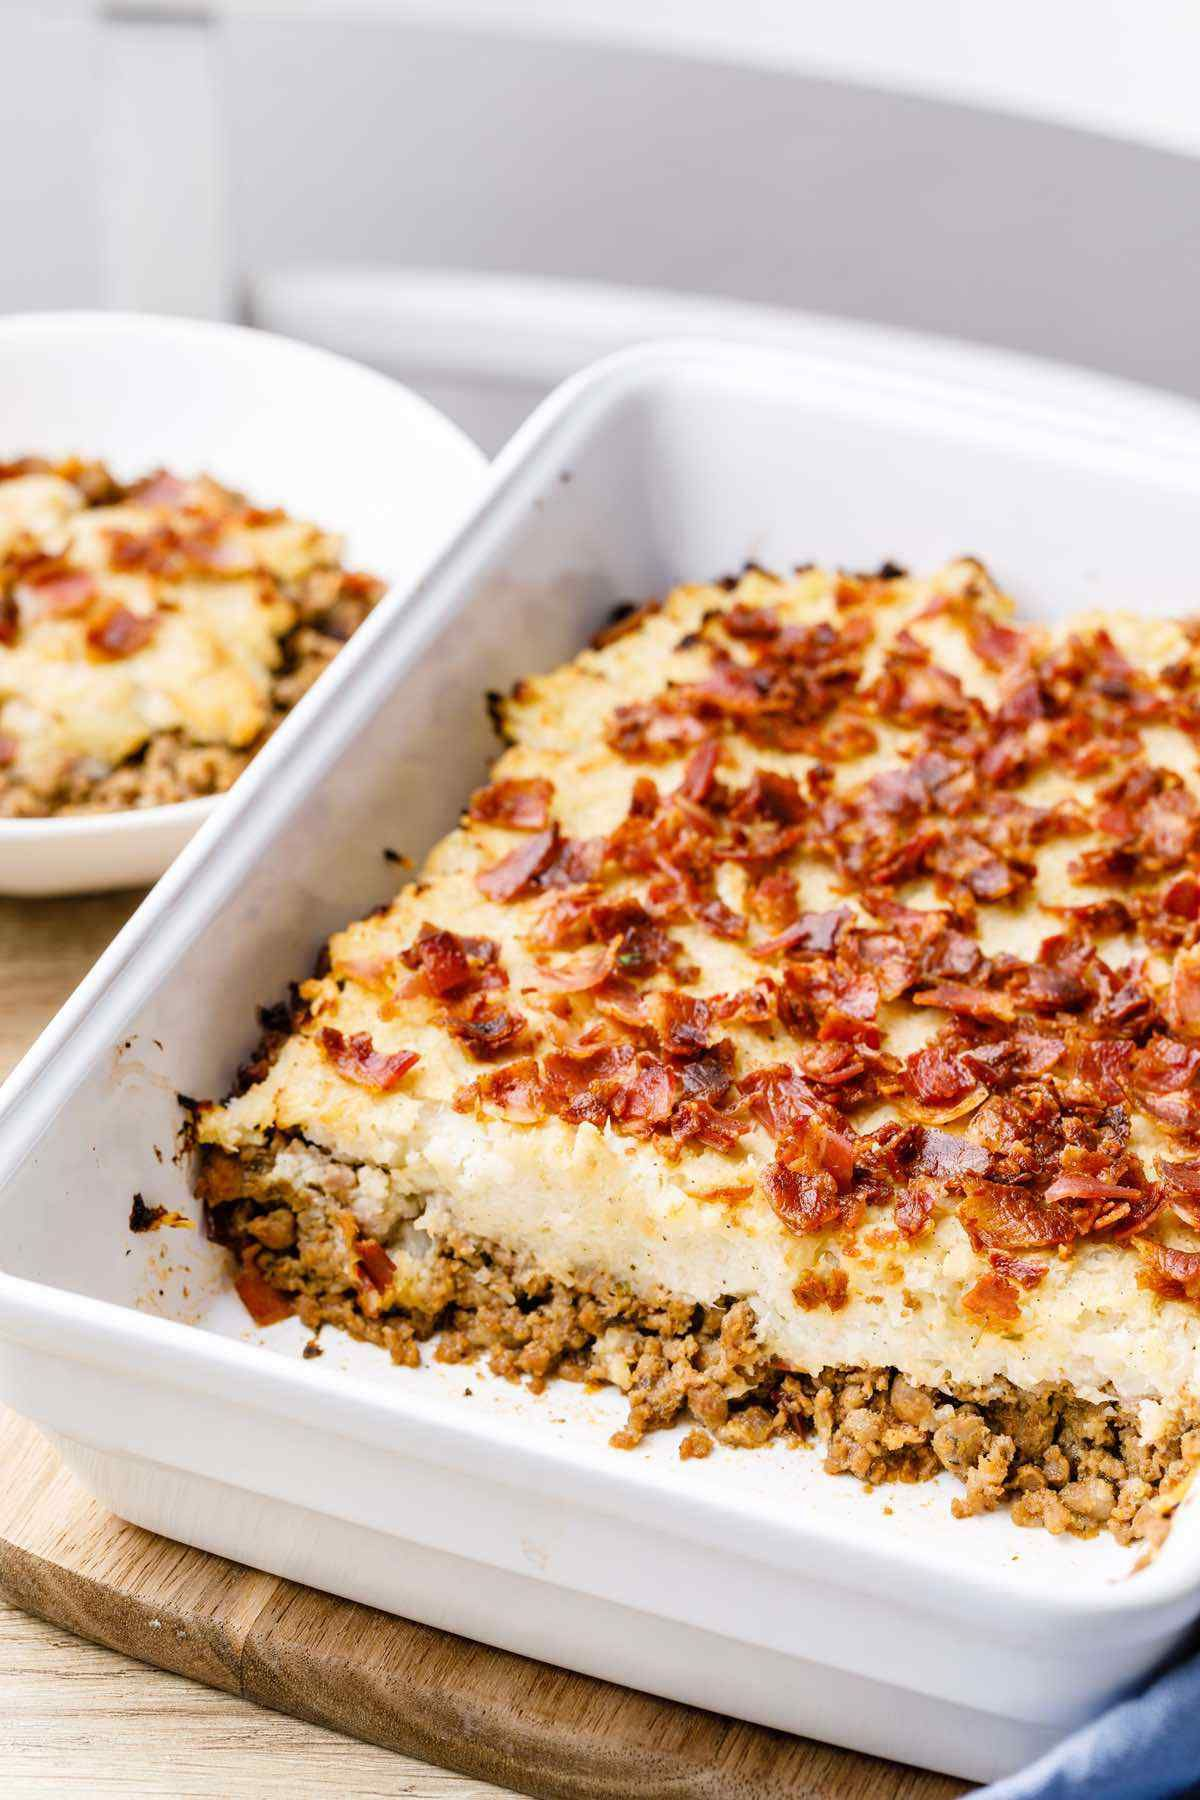 Double Bacon Ground Beef Paleo Casserole Low Carb Paleo Grubs Paleo Ground Beef Paleo Casserole Ground Beef Recipes